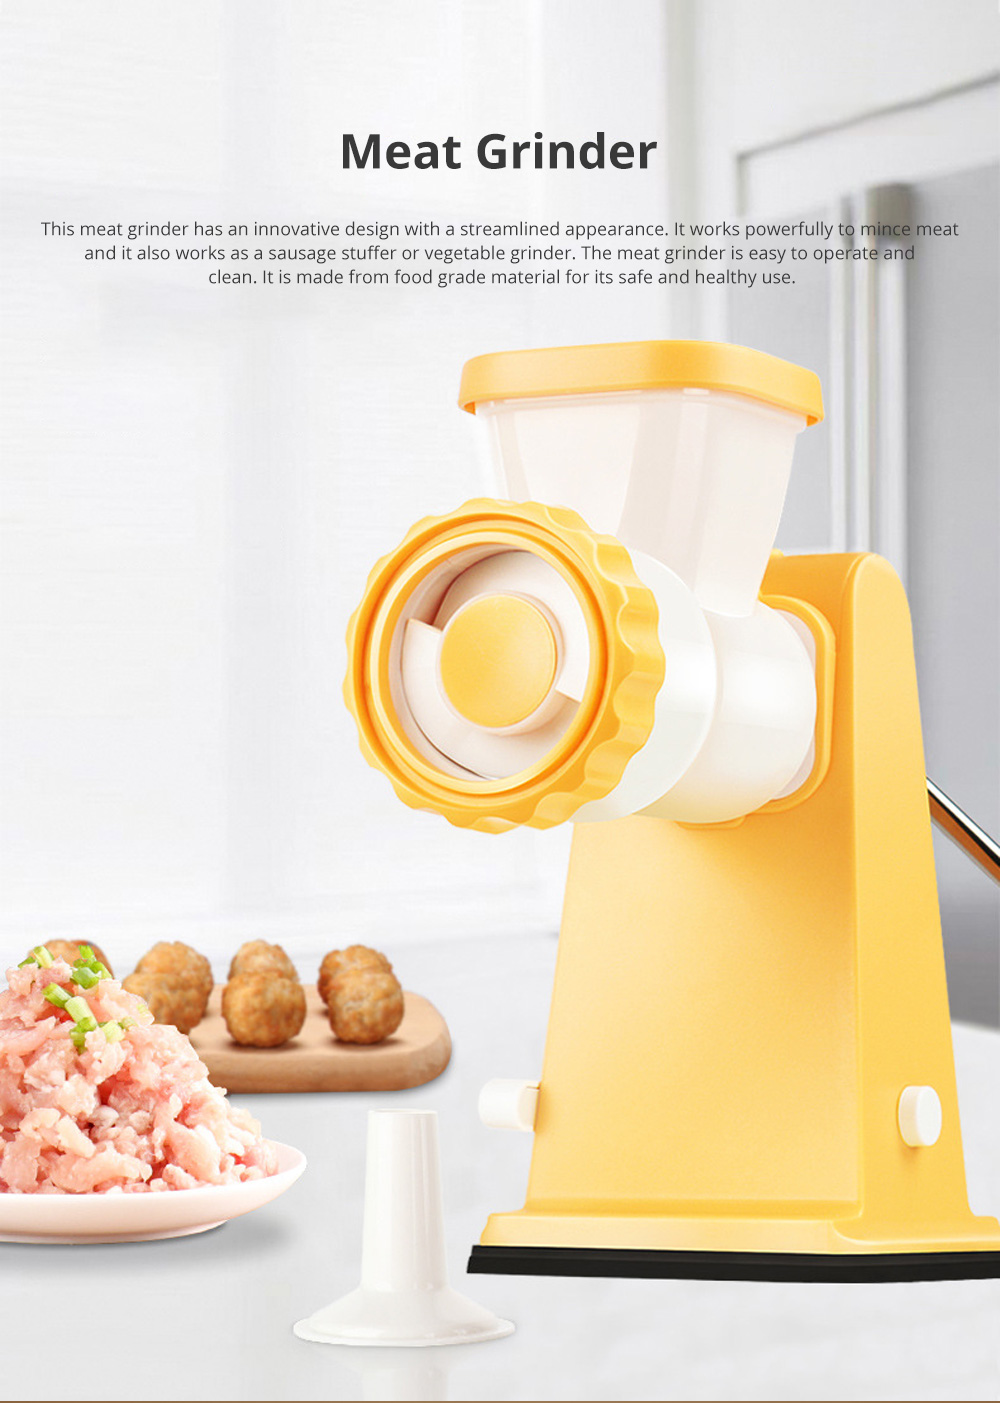 Manual Meat Grinder for Kitchen Use Easy to Operate Mincing Machine Multifunctional Meat Mincer Sausage Stuffer 0